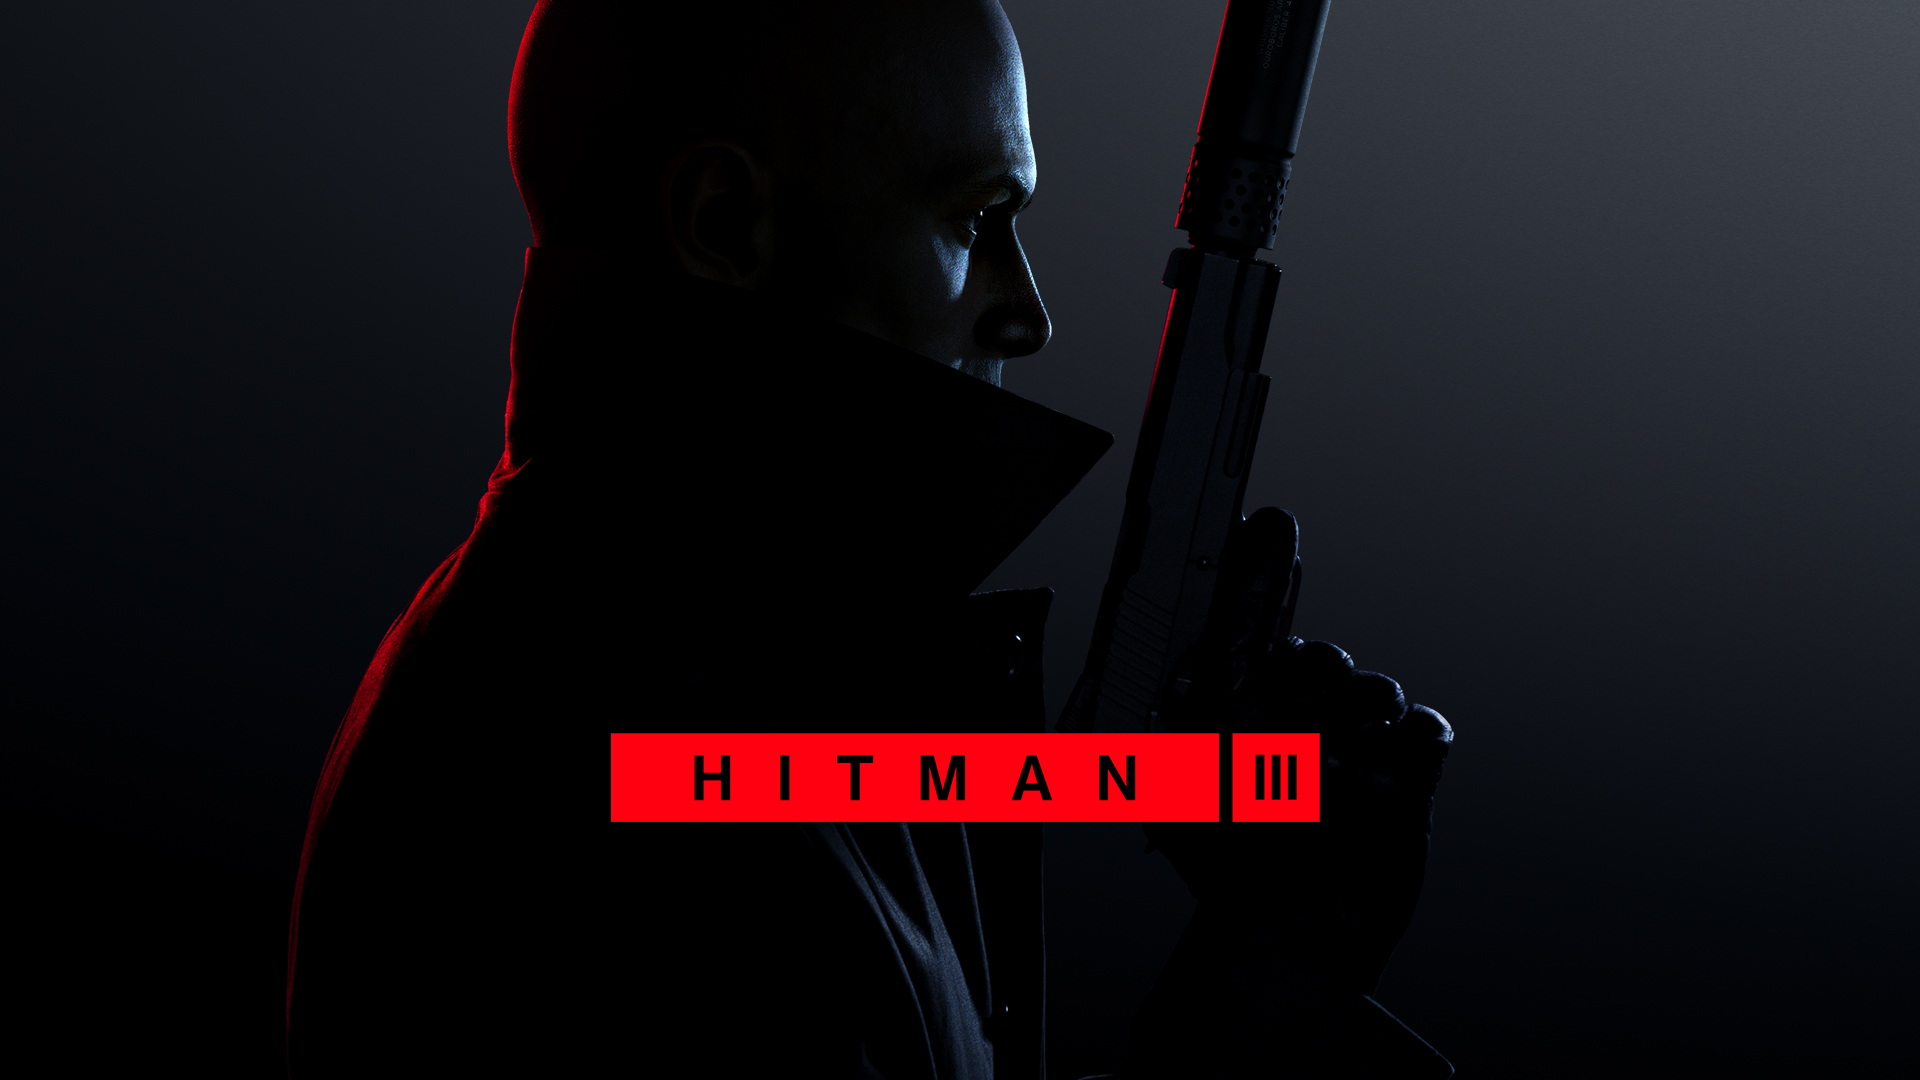 Hitman 3 (XBSX) Review: Suits, Creativity, and Immersive Maps